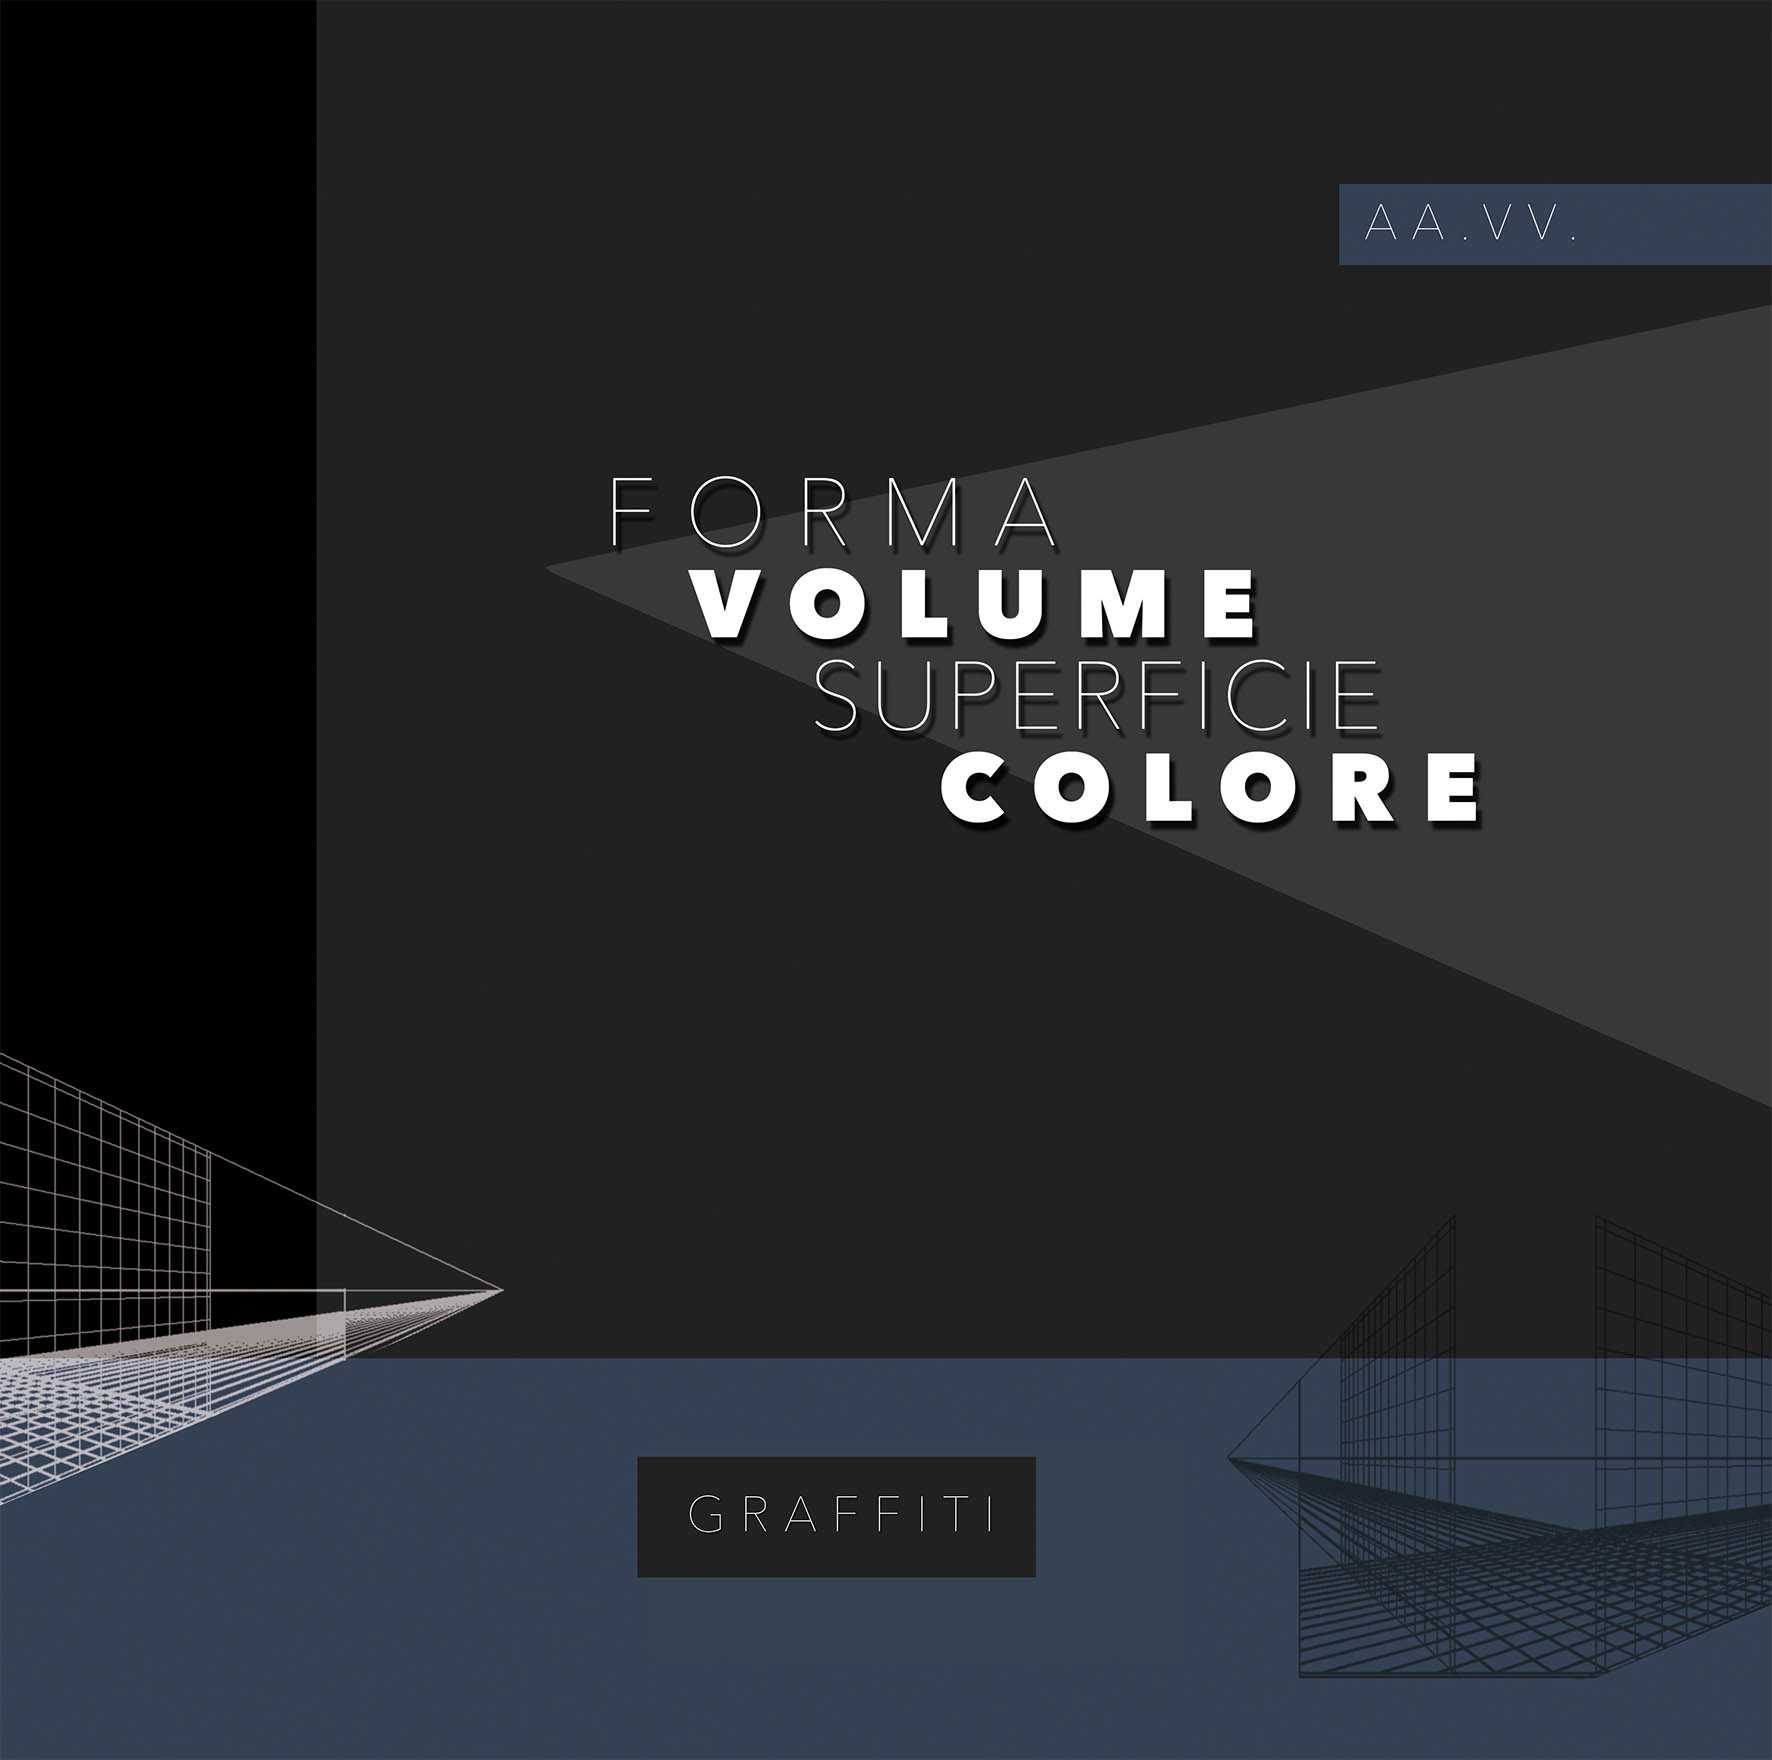 FORMA VOLUME SUPERFICIE COLORE